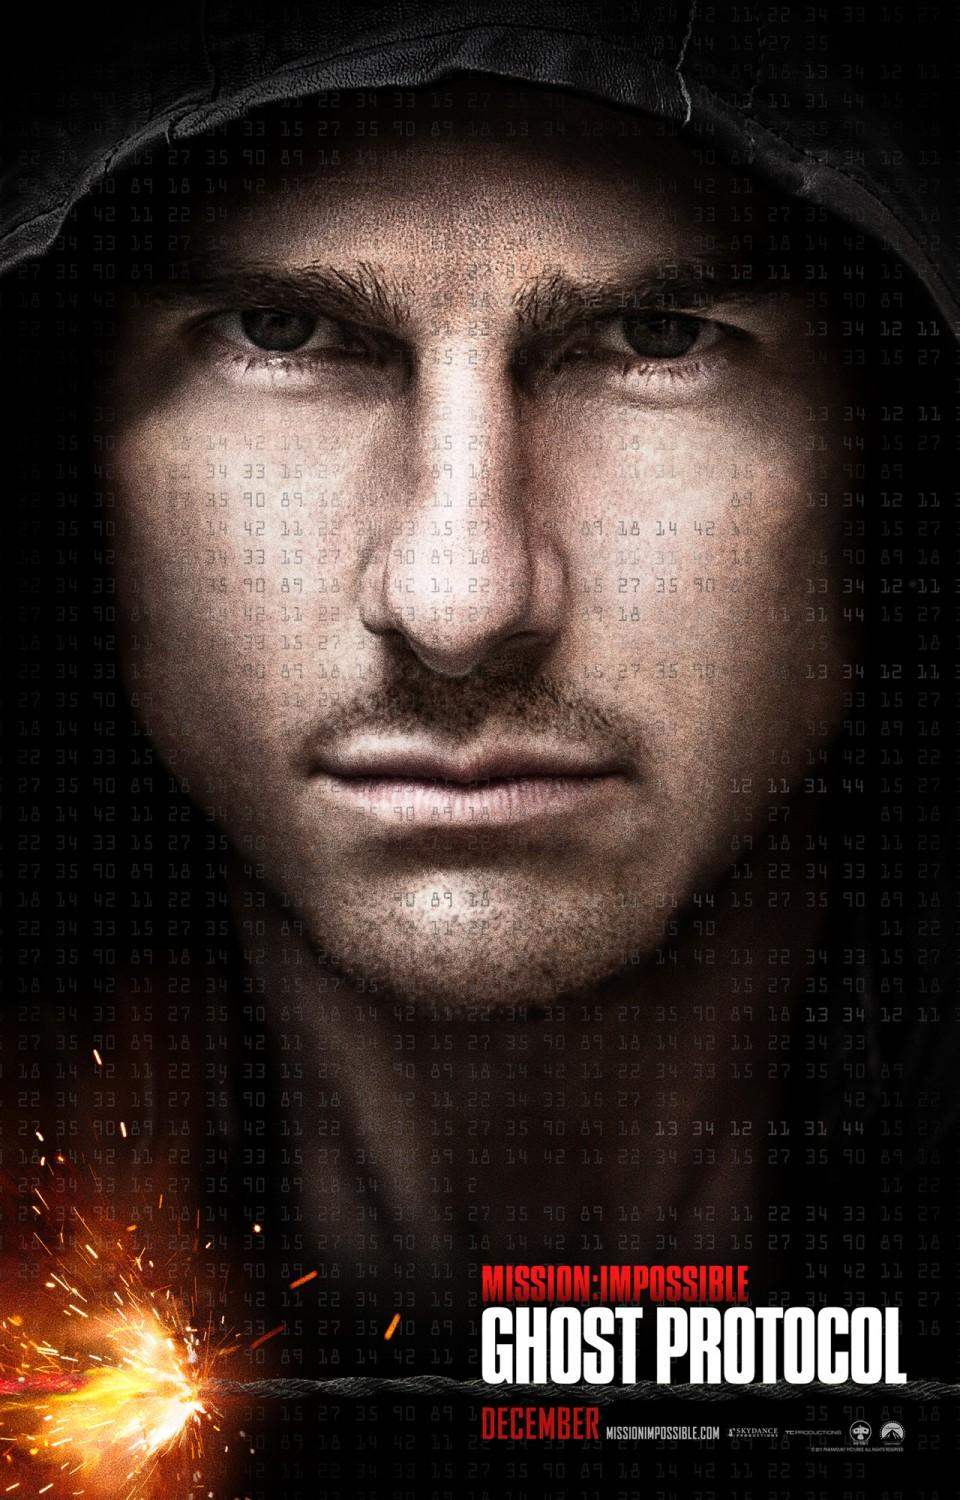 Mission%20Impossible%20%E2%80%93%20Ghost%20Protocol%202011.1 1 دانلود فیلم Mission Impossible: Ghost Protocol 2011